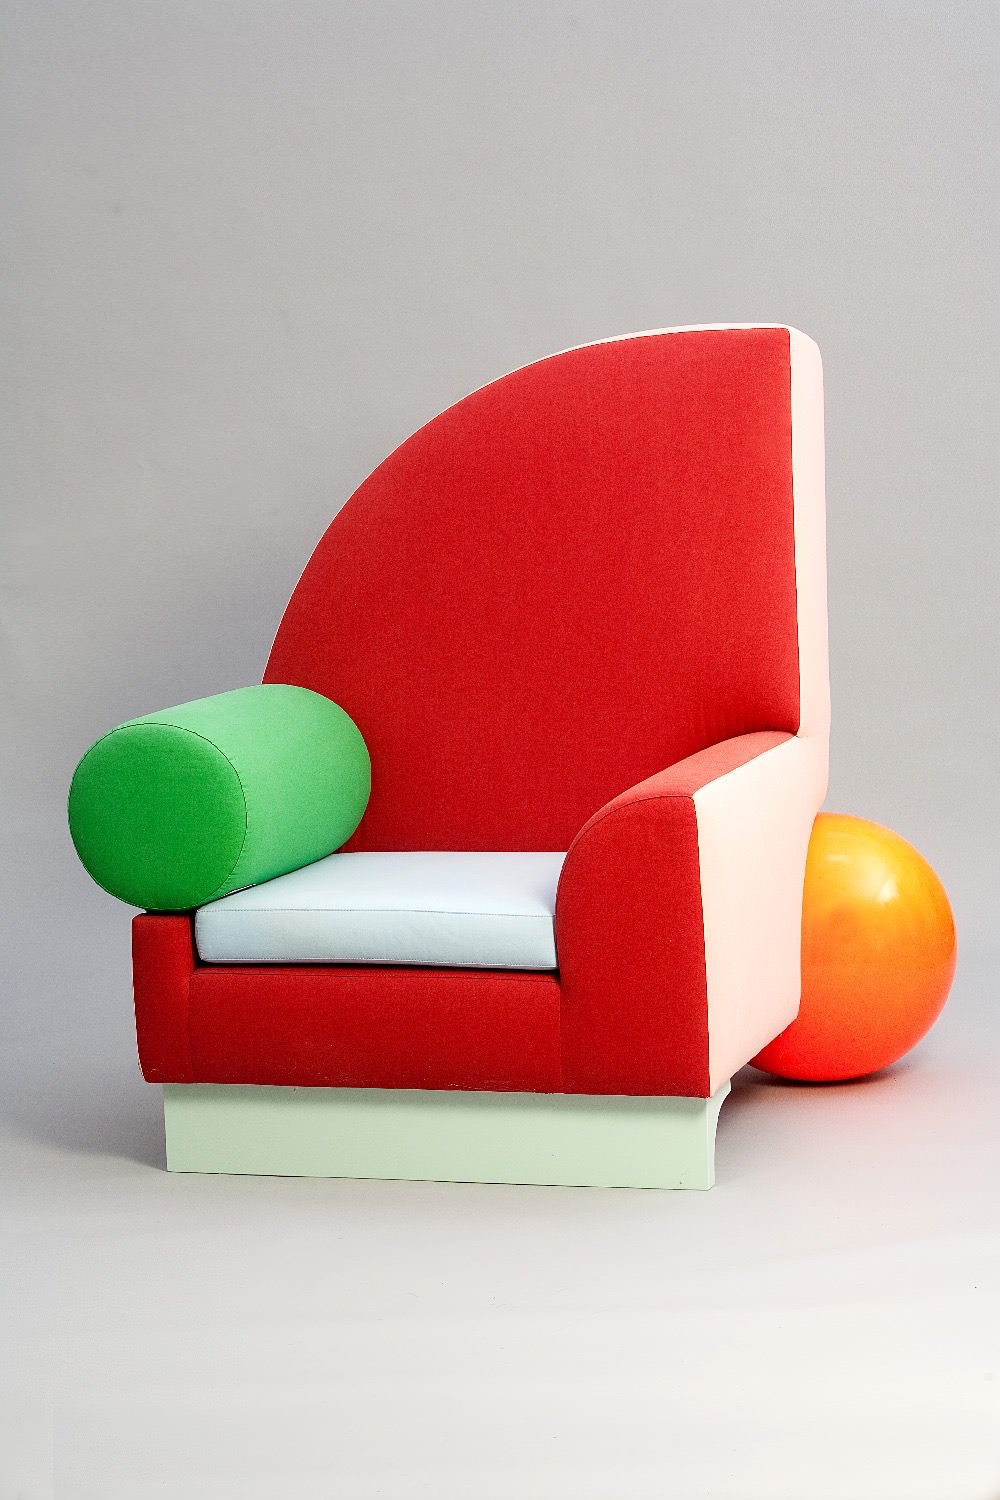 TUNICA - Memphis group for Ettore Sottsass Sofa  585eri